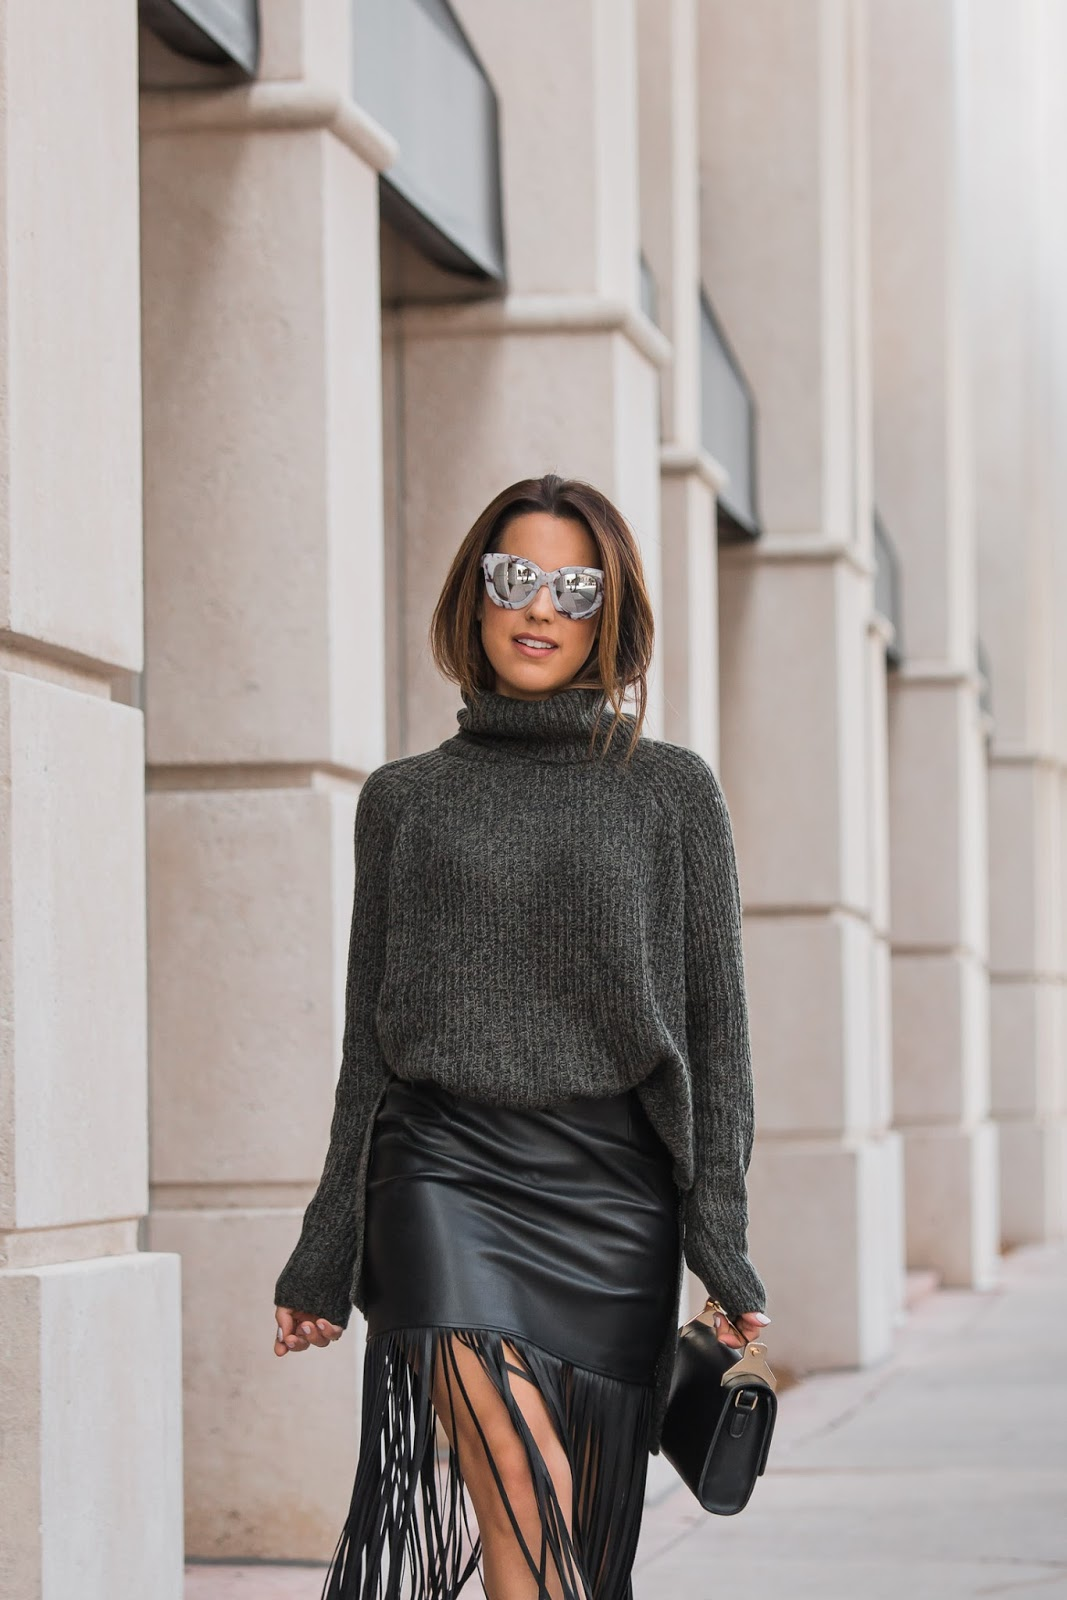 fringe-leather-skirt-turtleneck-sweater-fashion